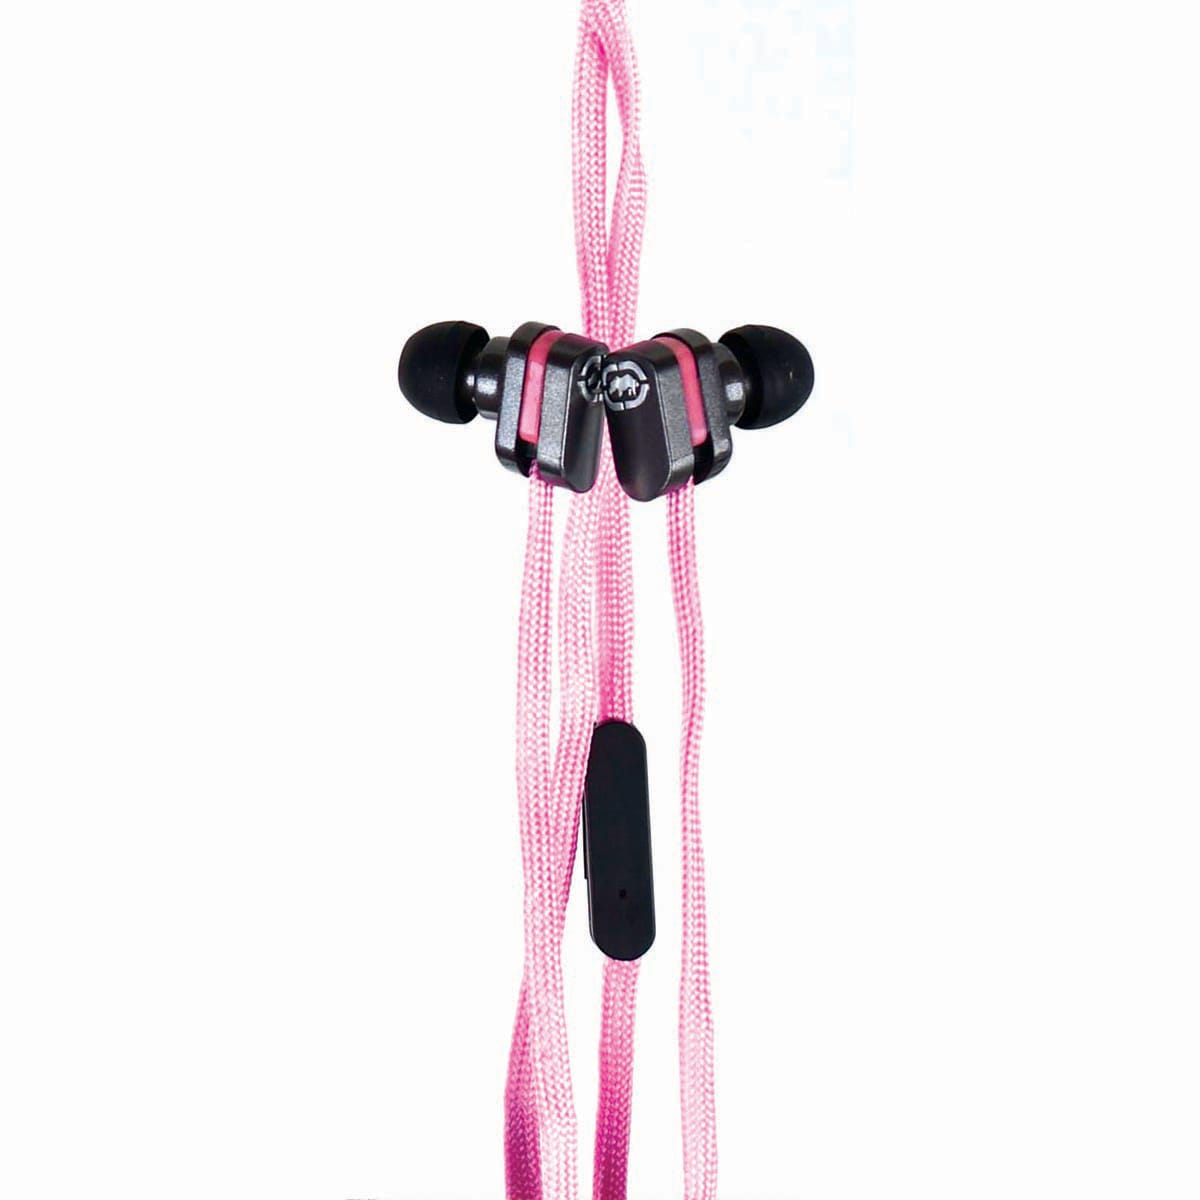 Ecko Lace Pink Earbud and mic EKU-LCE-PK